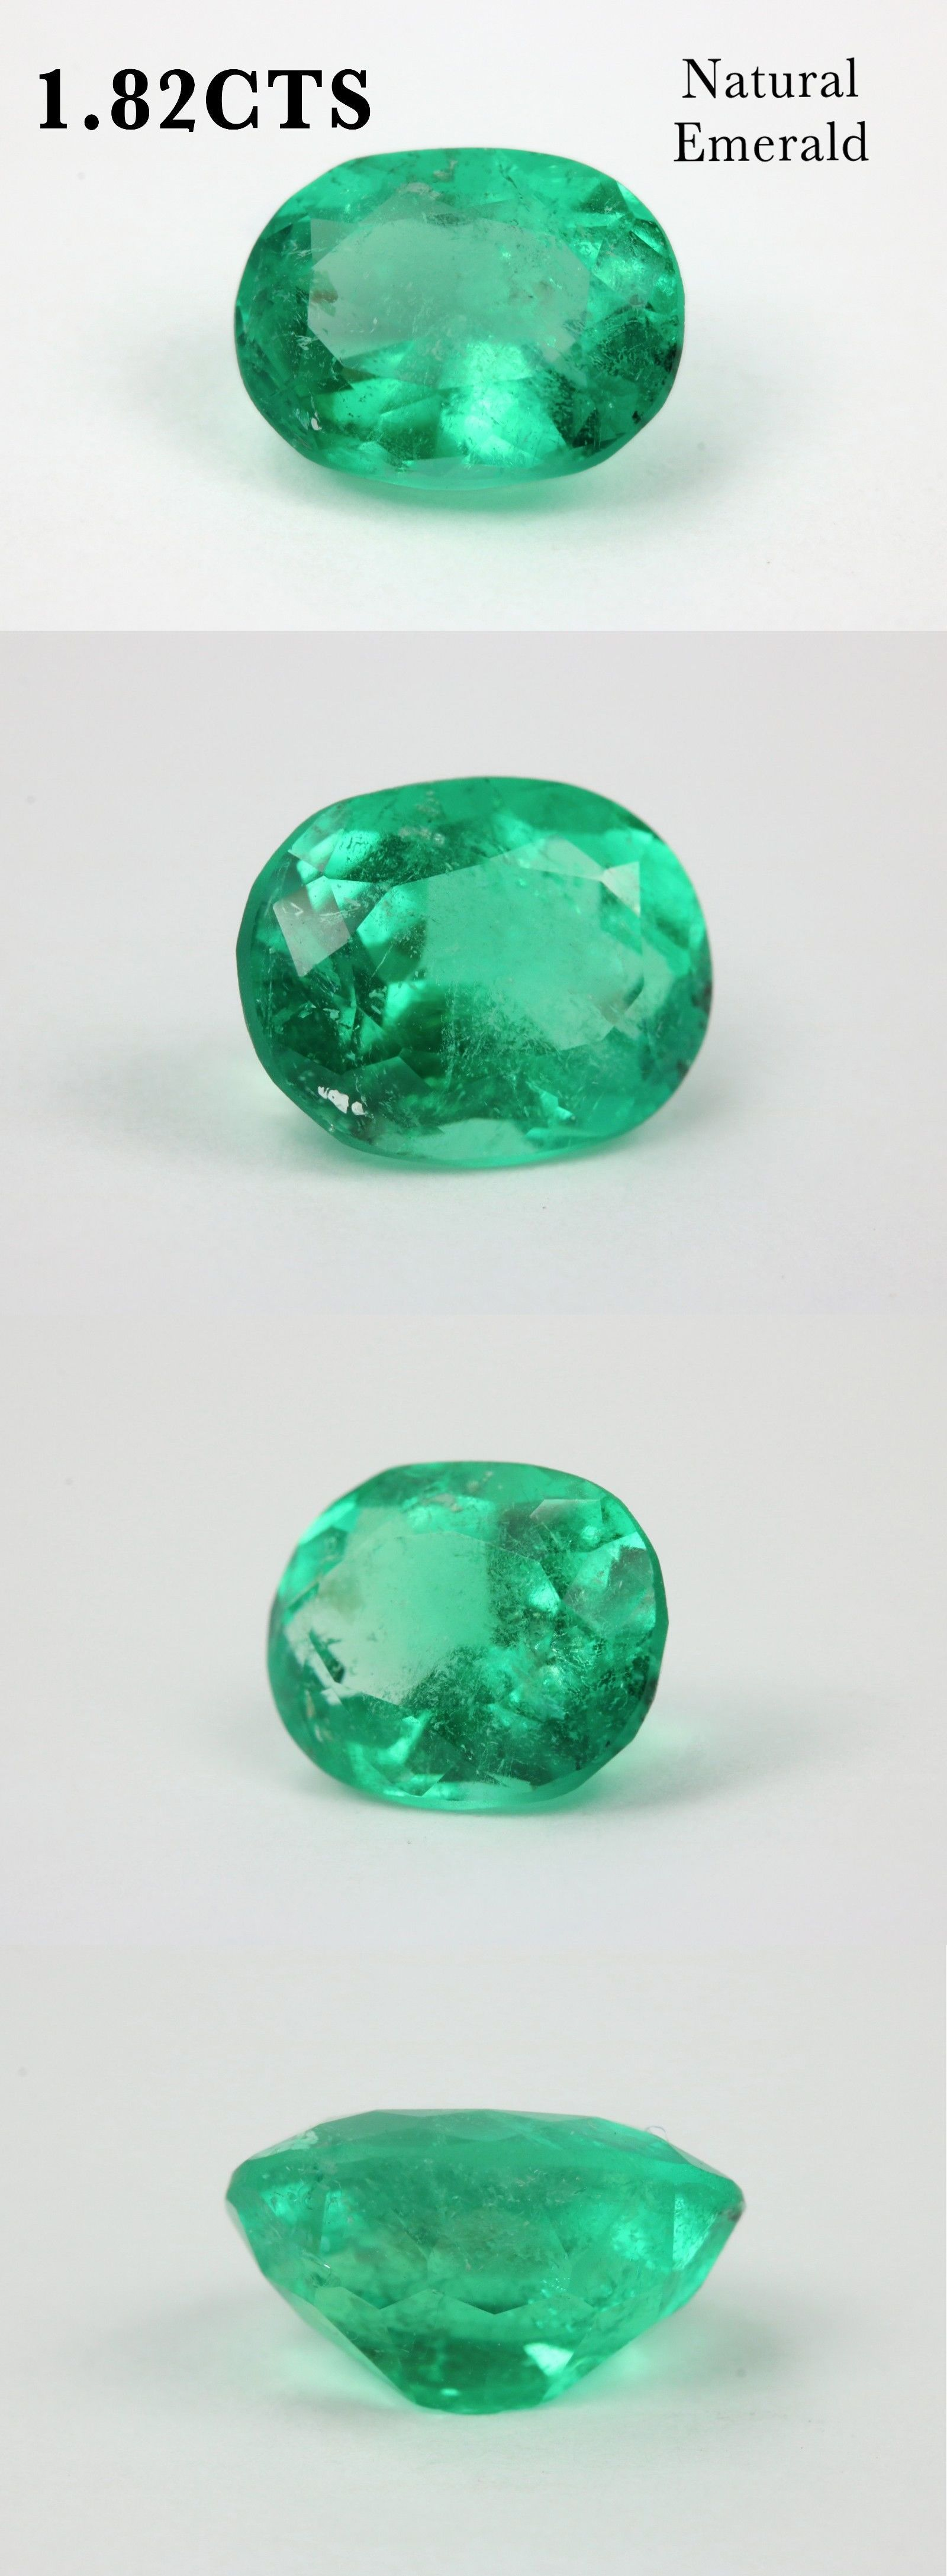 emerald colombian pear fine quality loose natural aaa certified pin